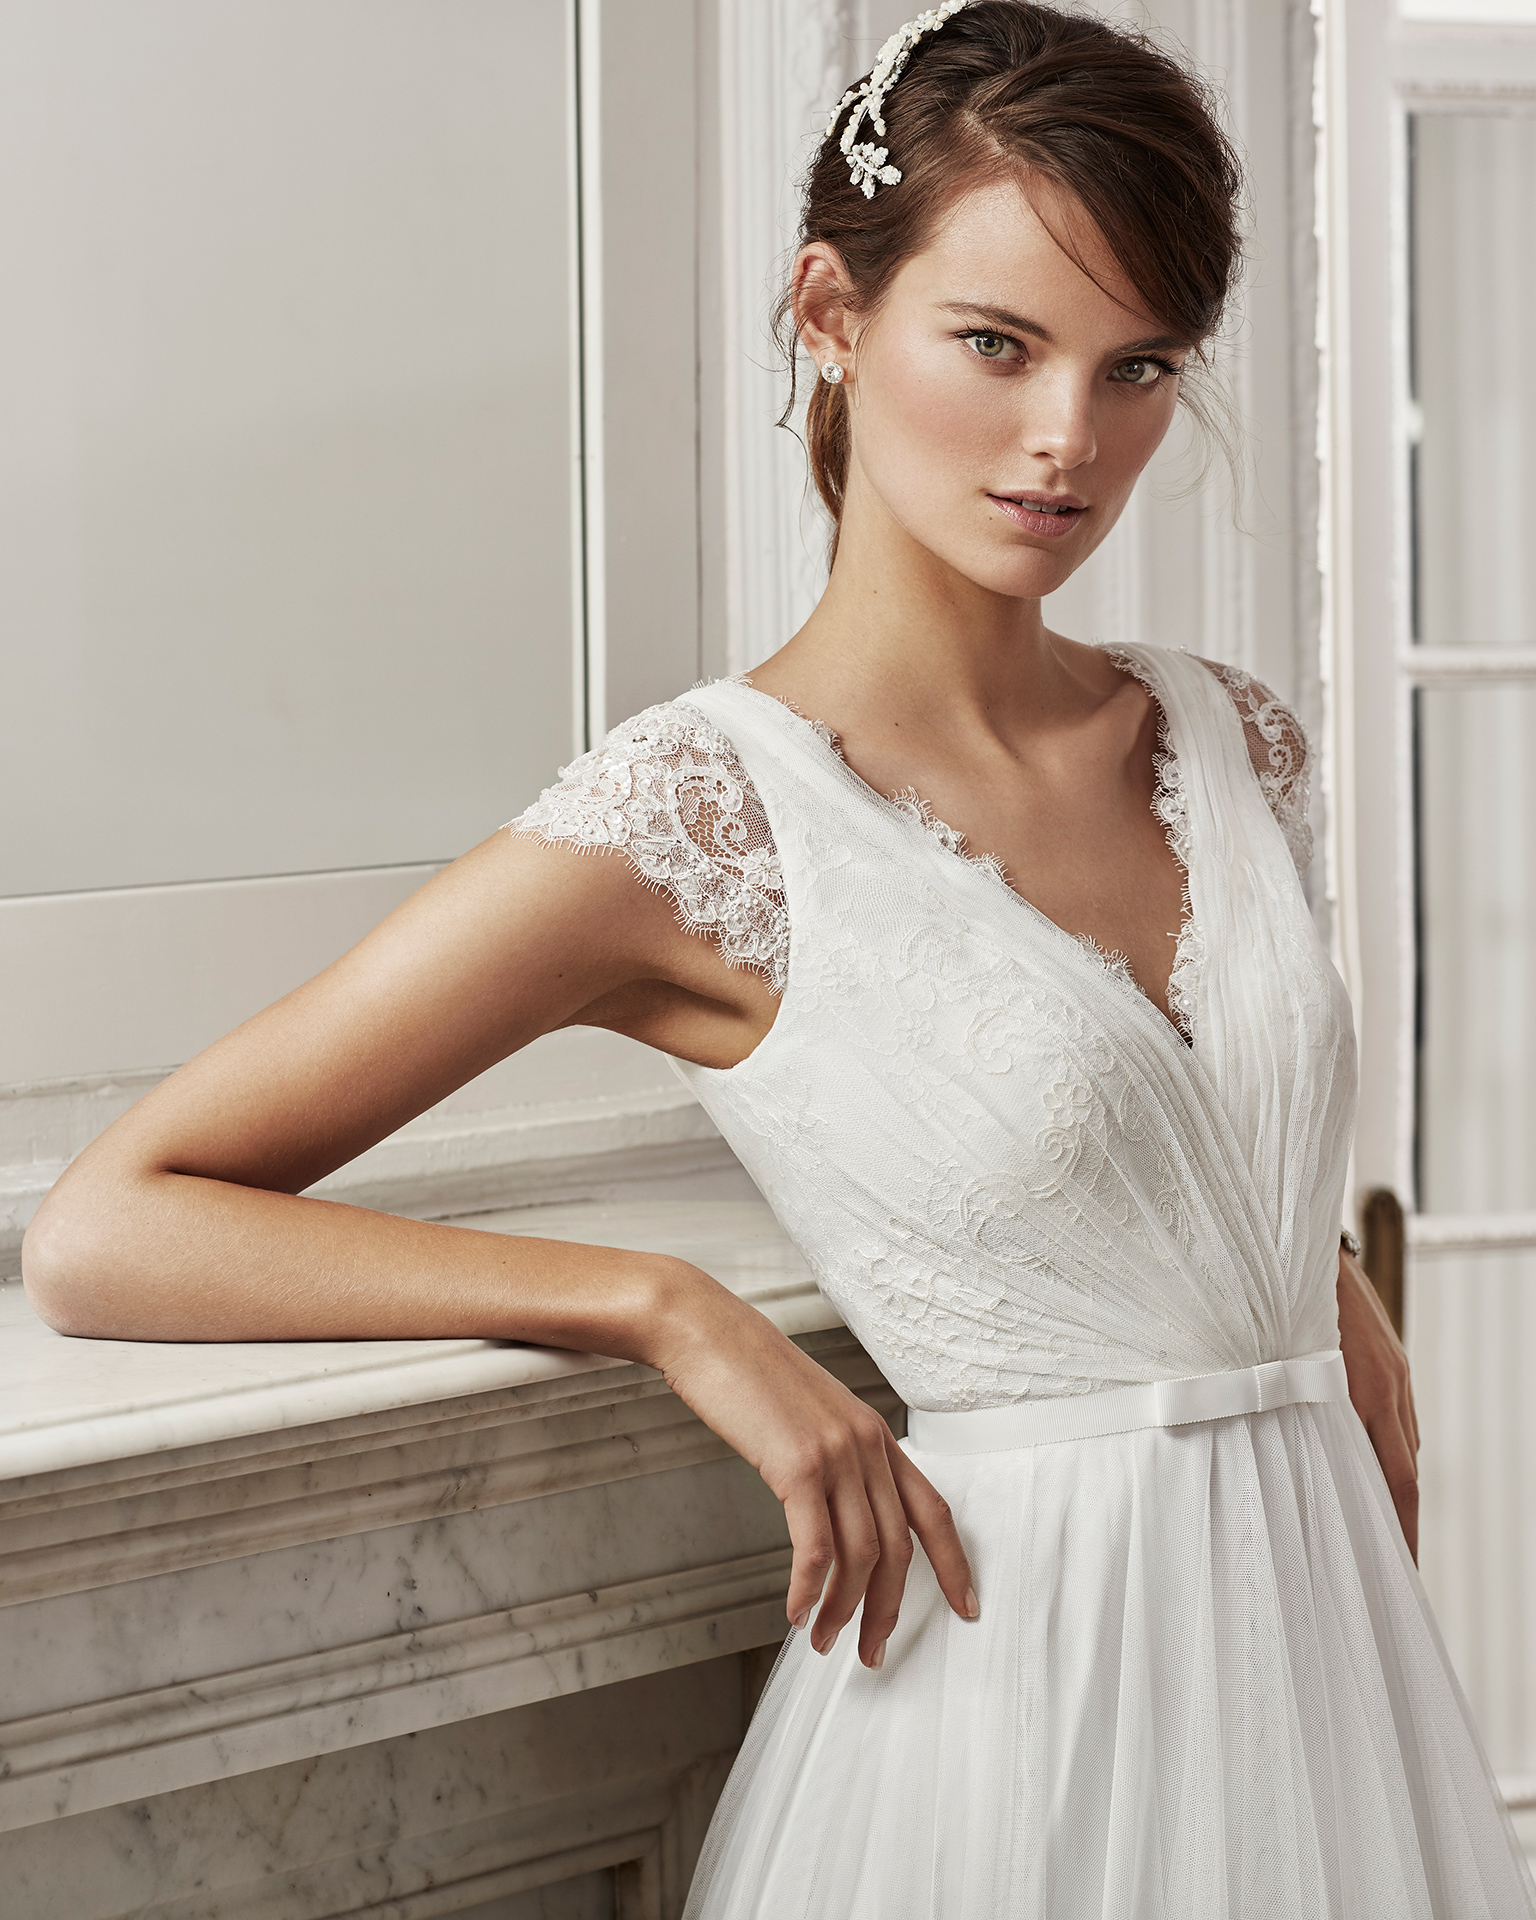 Beaded lace and tulle sheath wedding dress with short sleeves, V-neckline and low back.